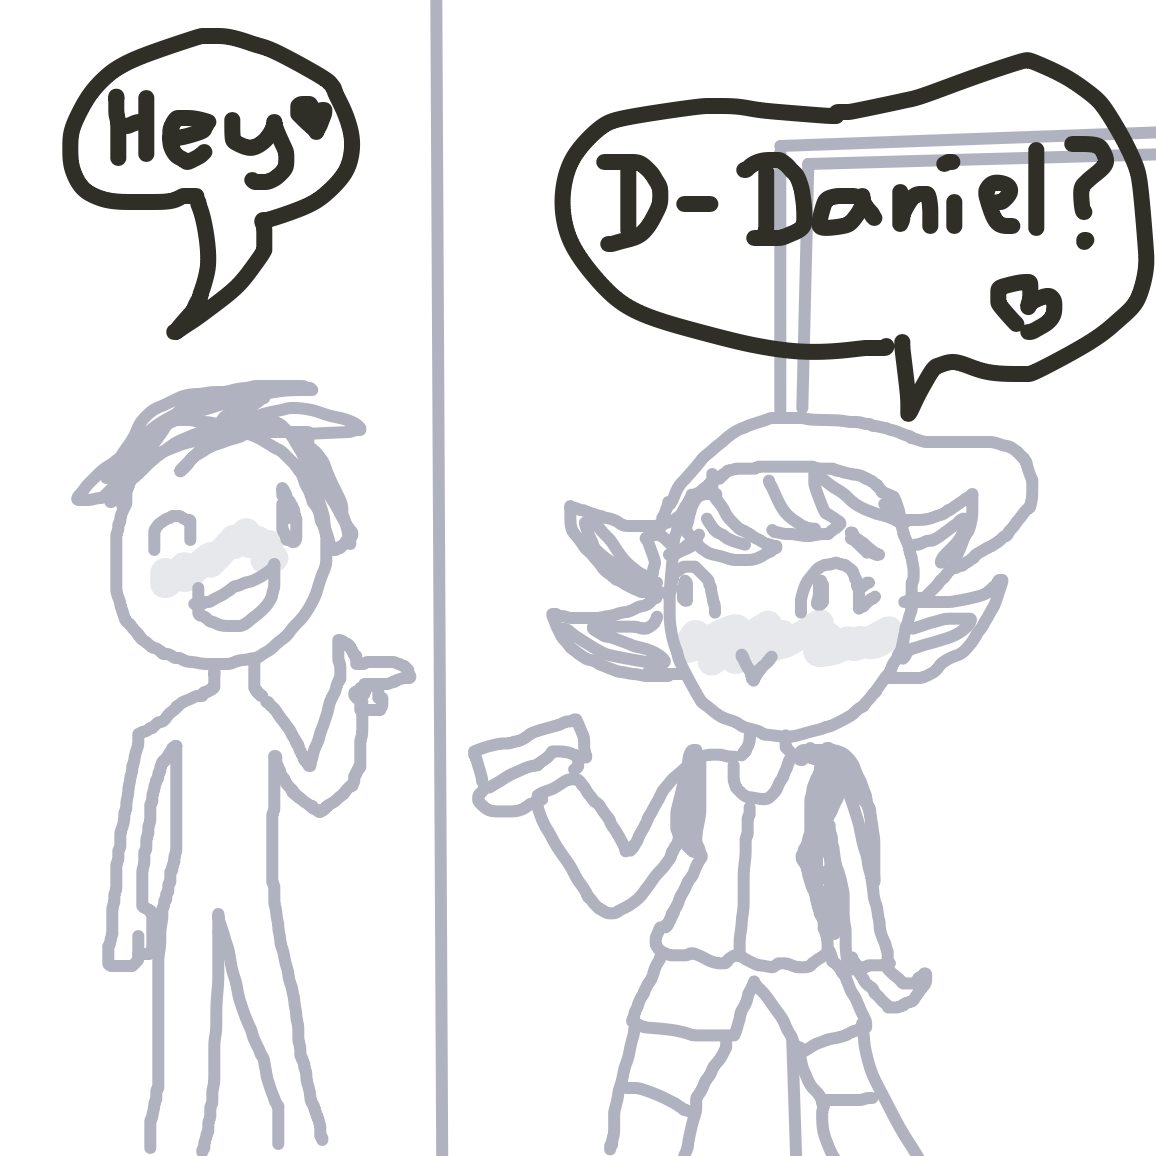 hehe <3 - Online Drawing Game Comic Strip Panel by unfortunate fool